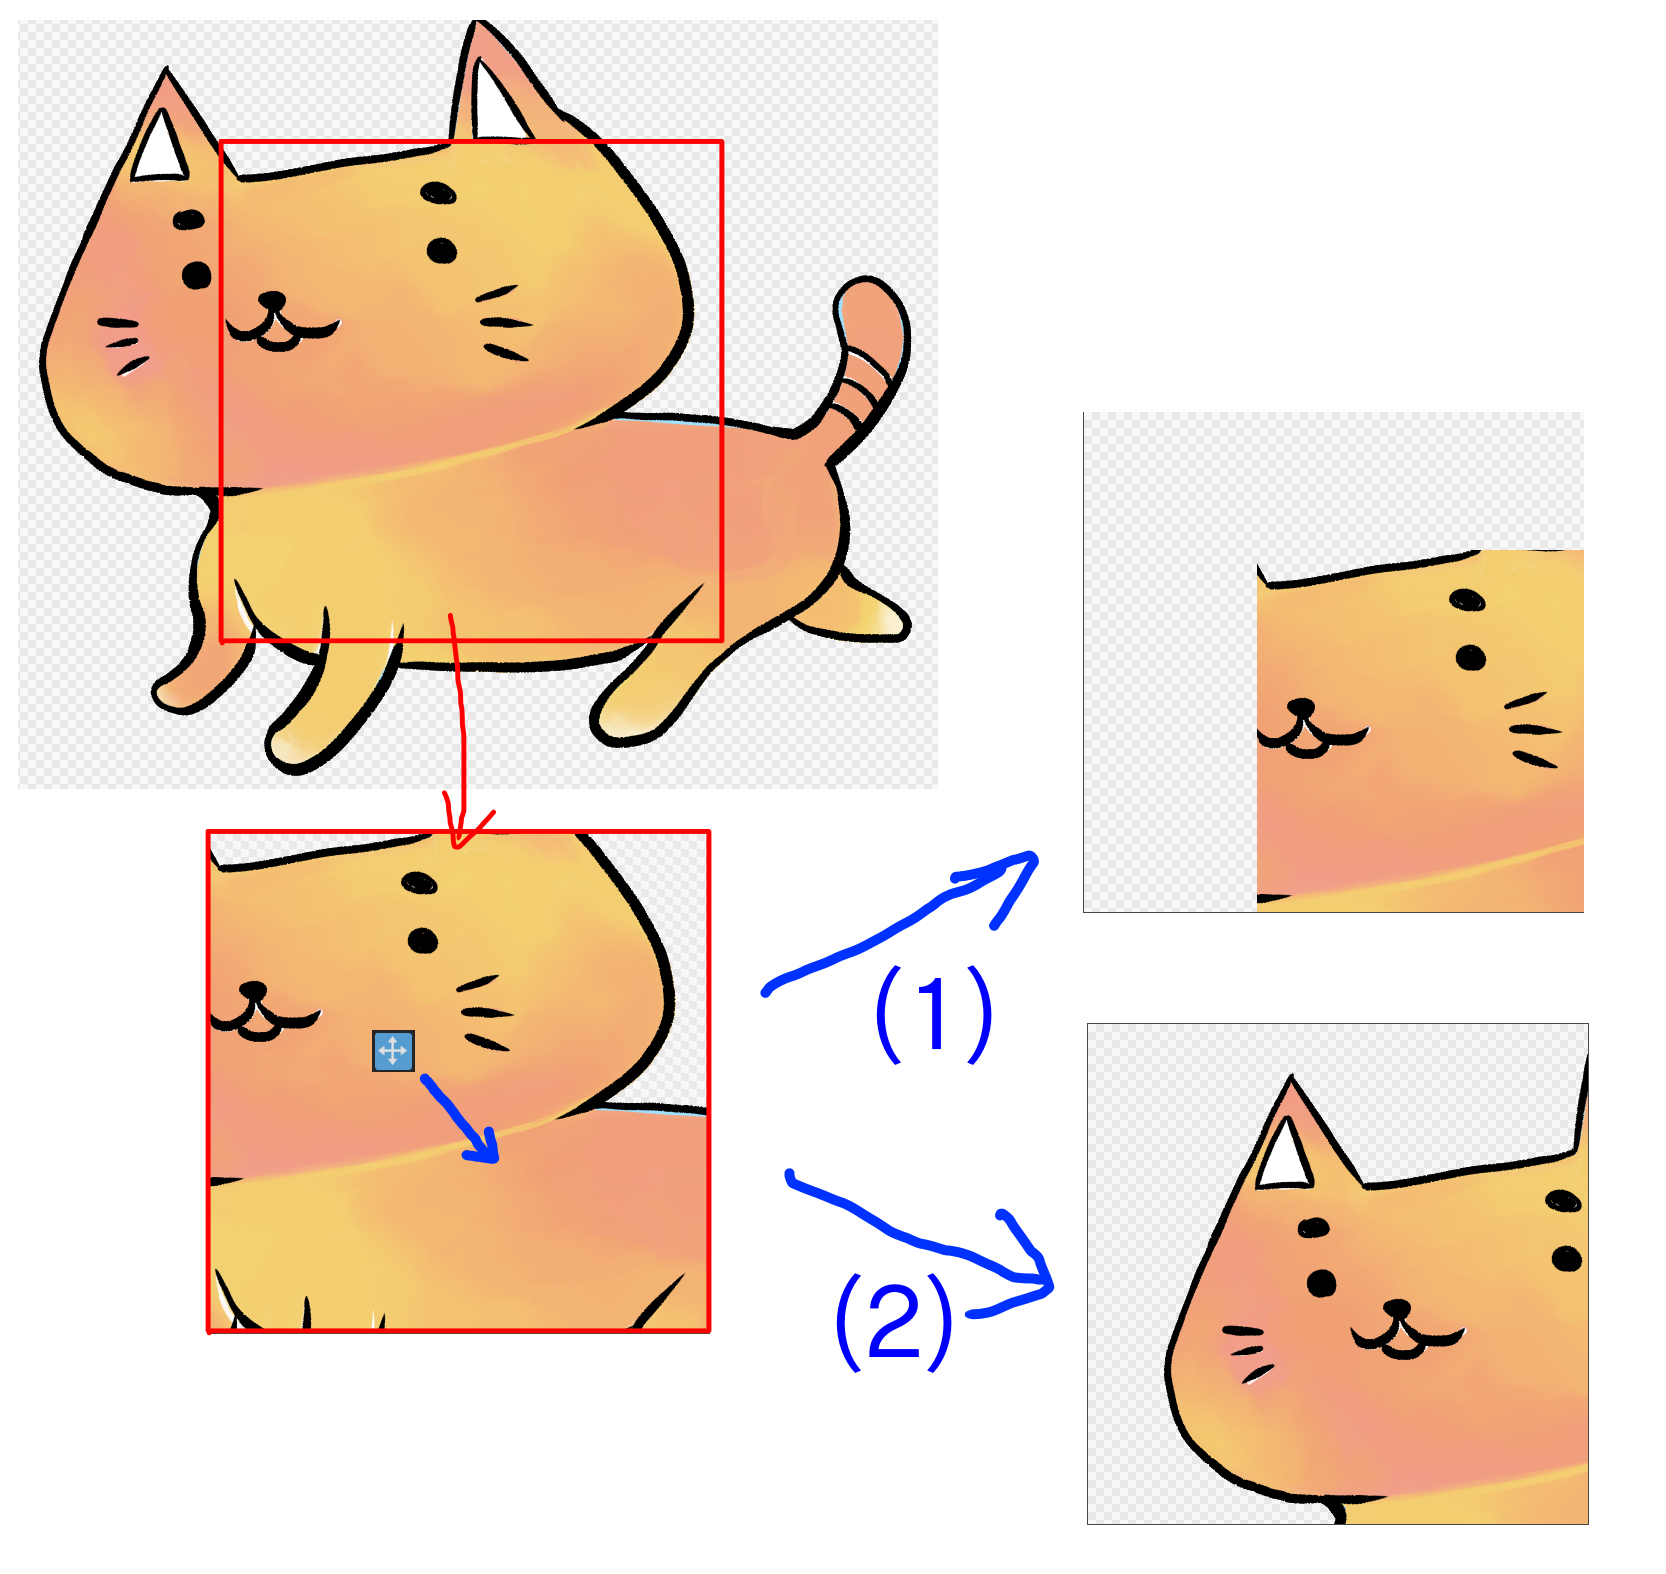 Difference when moving to the lower right after changing the canvas size